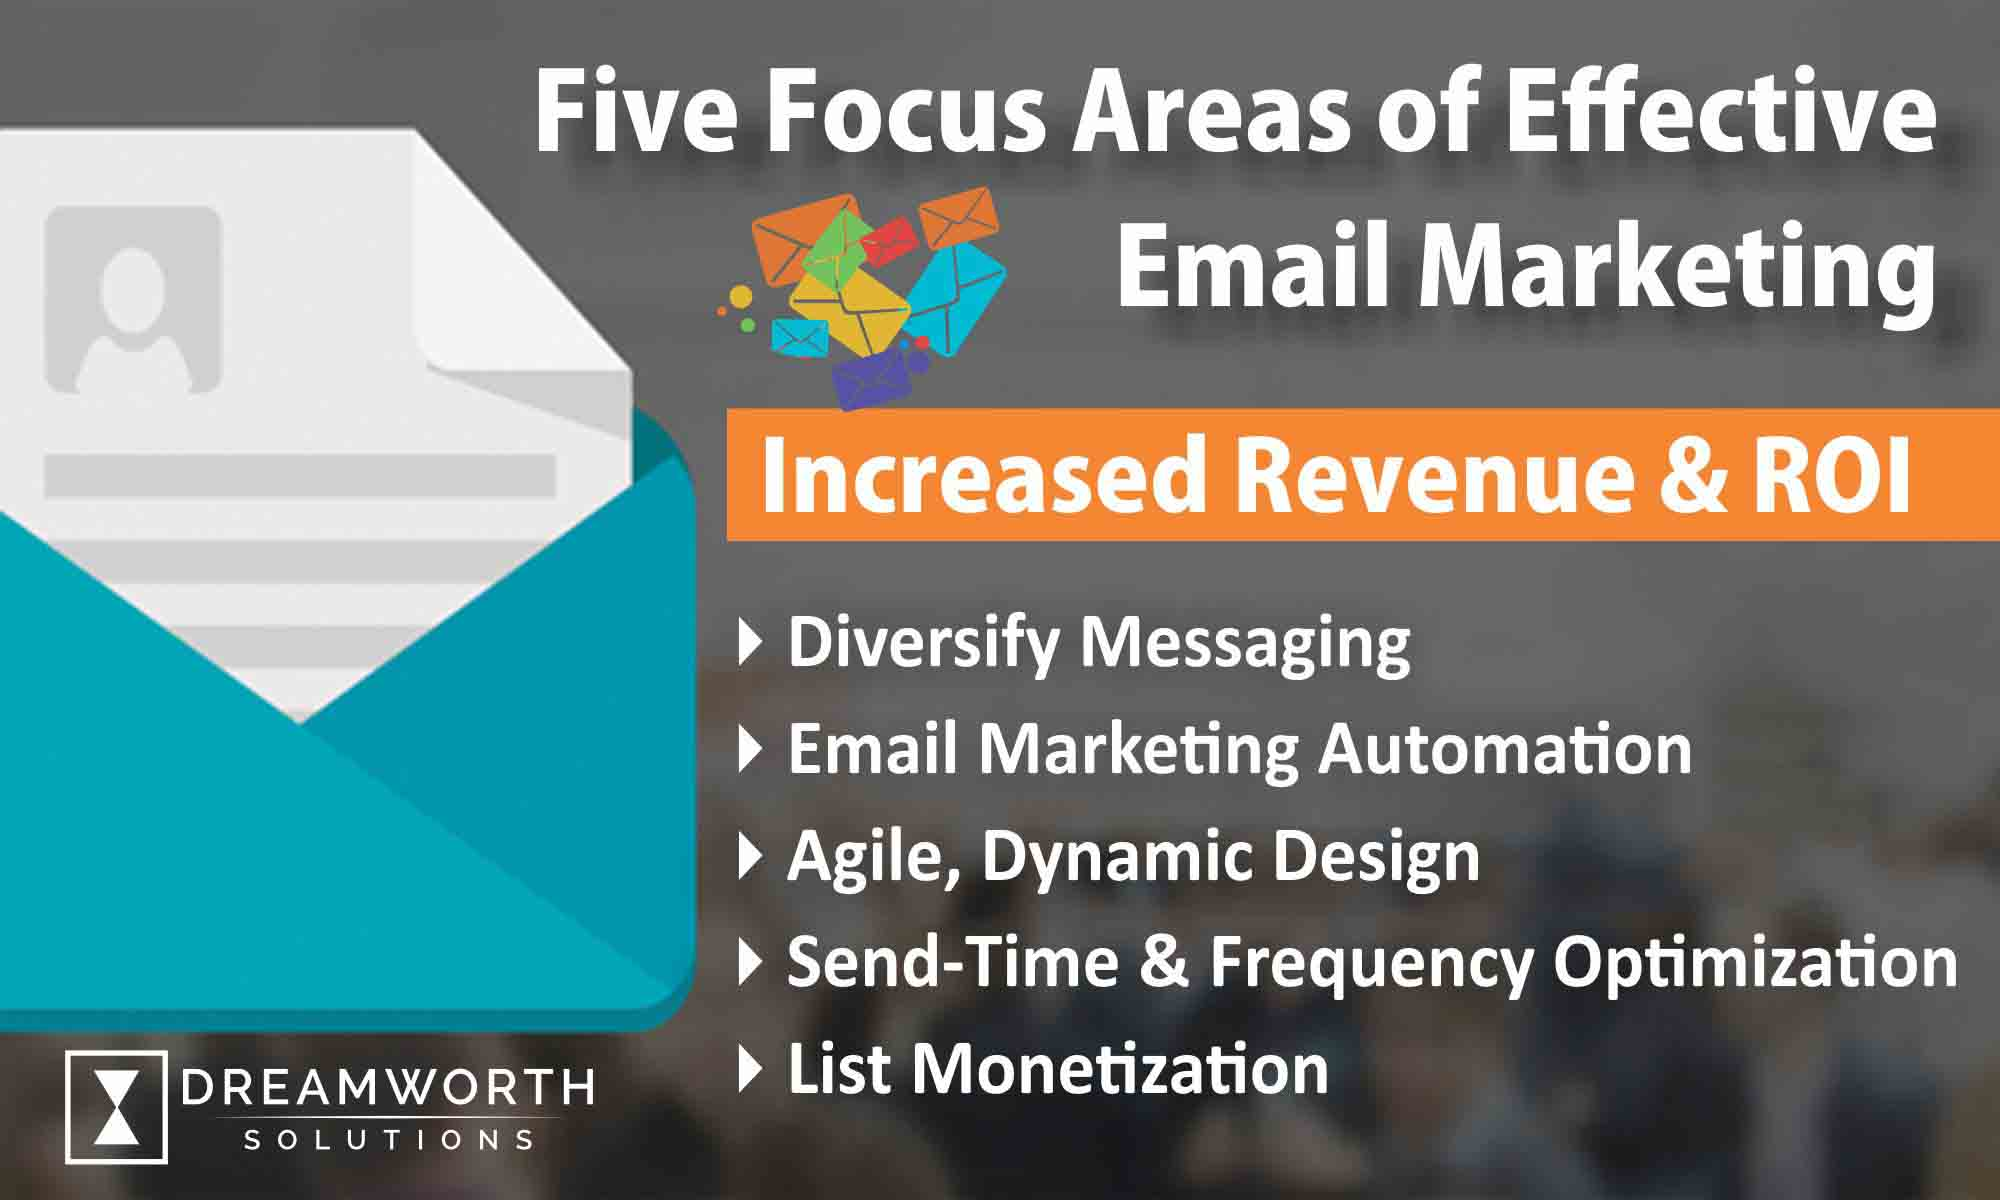 Dreamworth solutions provides effective email marketing to its clients